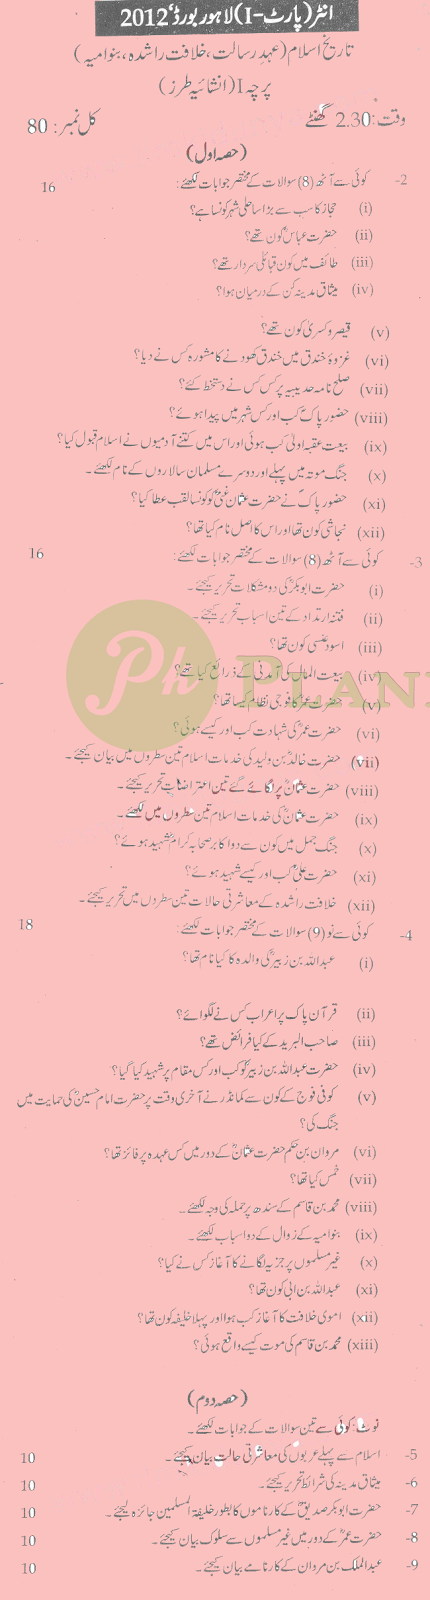 Intermediate Part 1 Past Papers Lahore Board History of Islam 2012